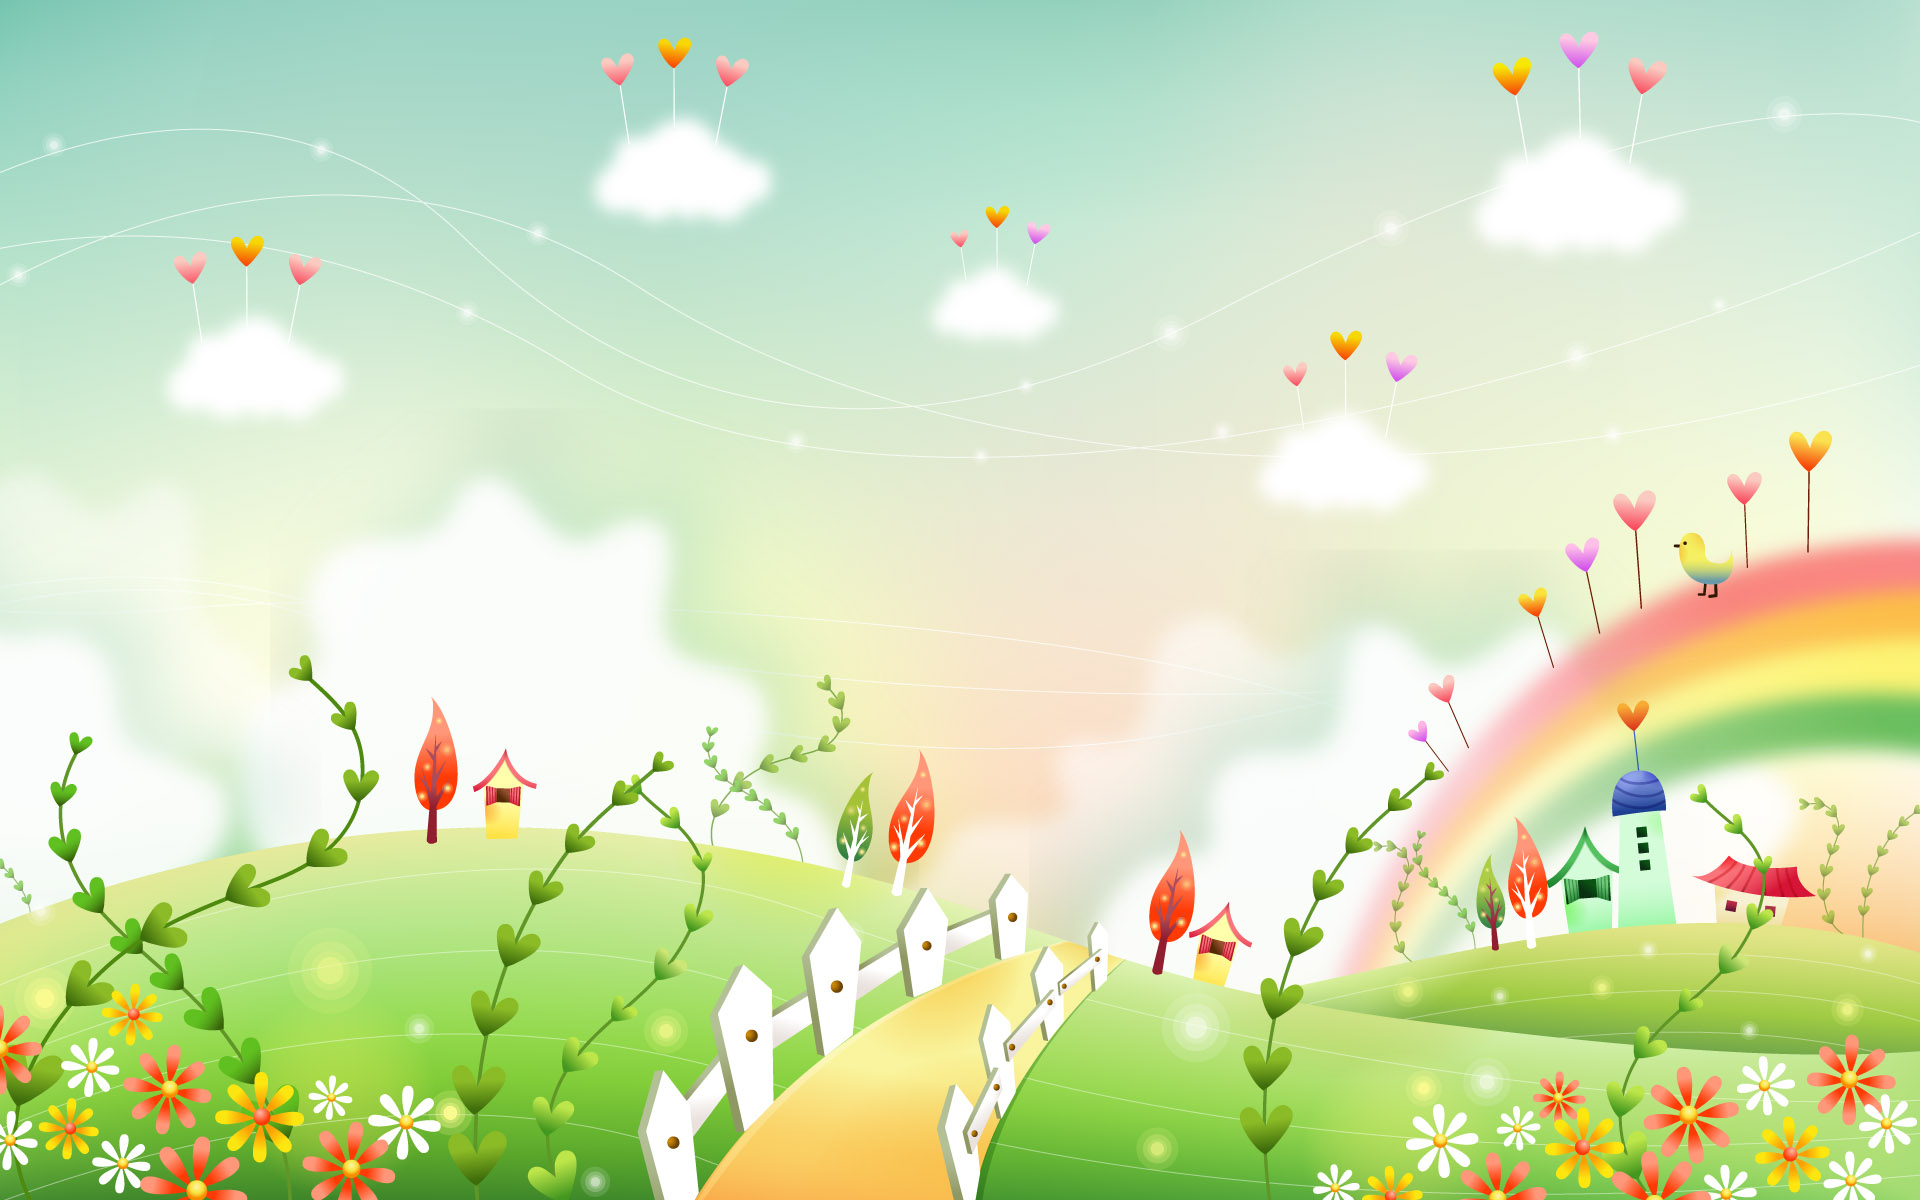 Background clipart #5